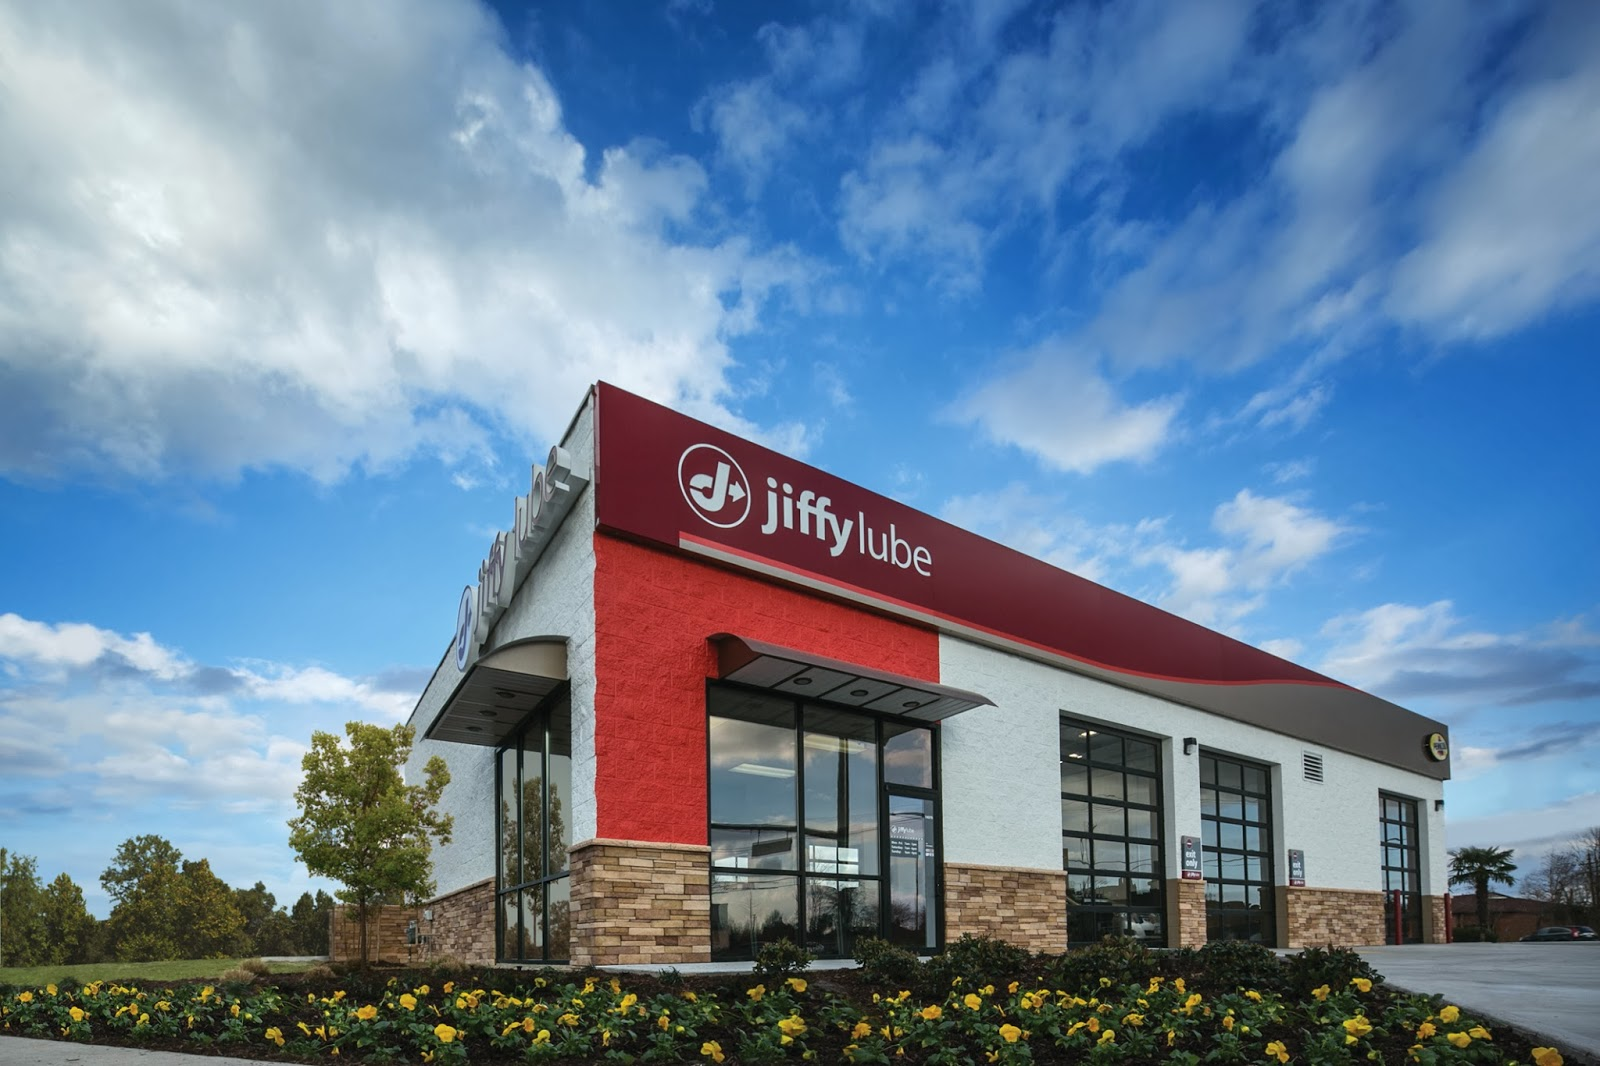 Net leased investment properties 2 - Jiffy Lube